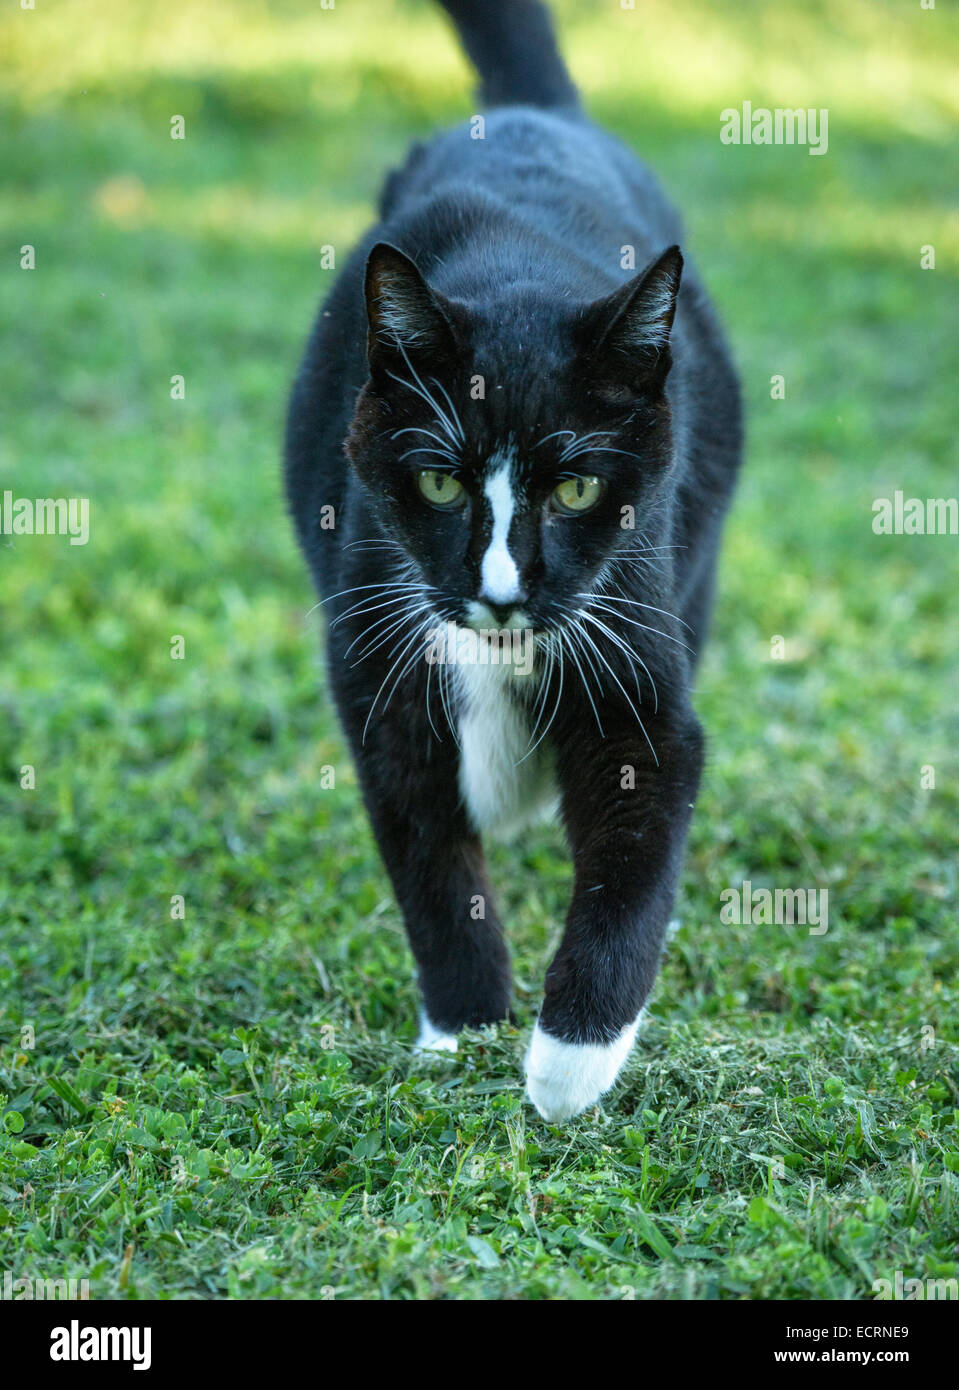 Aged barn cat pet approaches - Stock Image